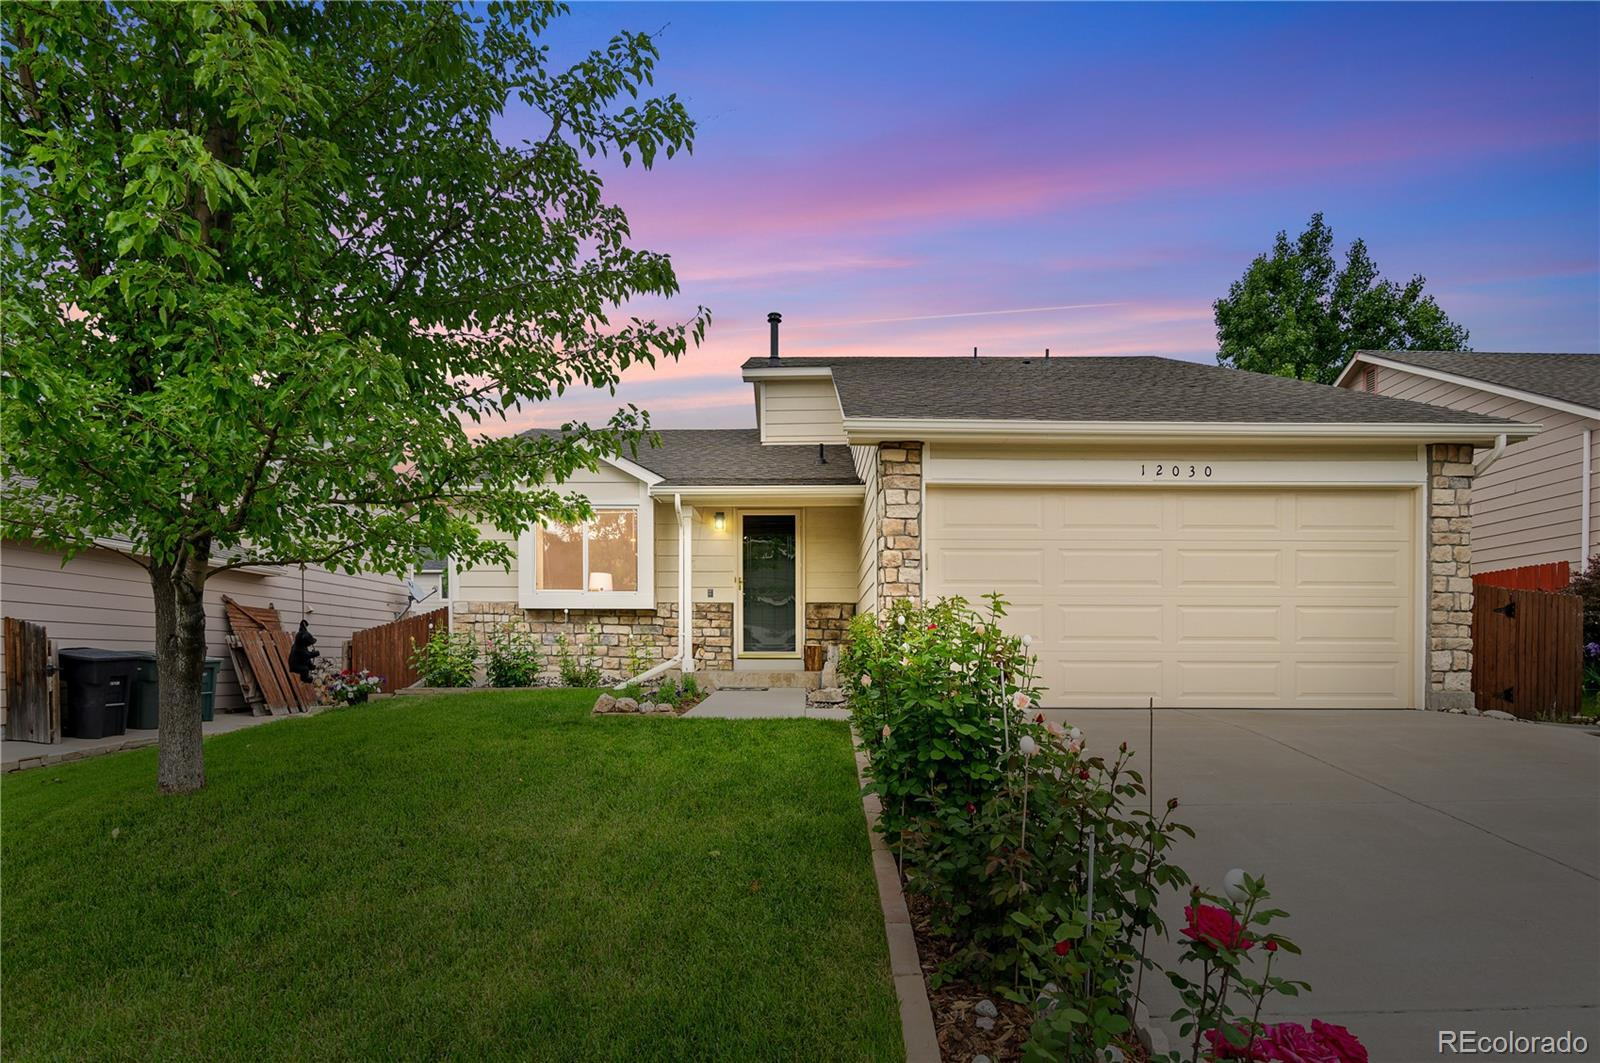 12030 Forest Way, Thornton, CO 80241 - #: 2423130